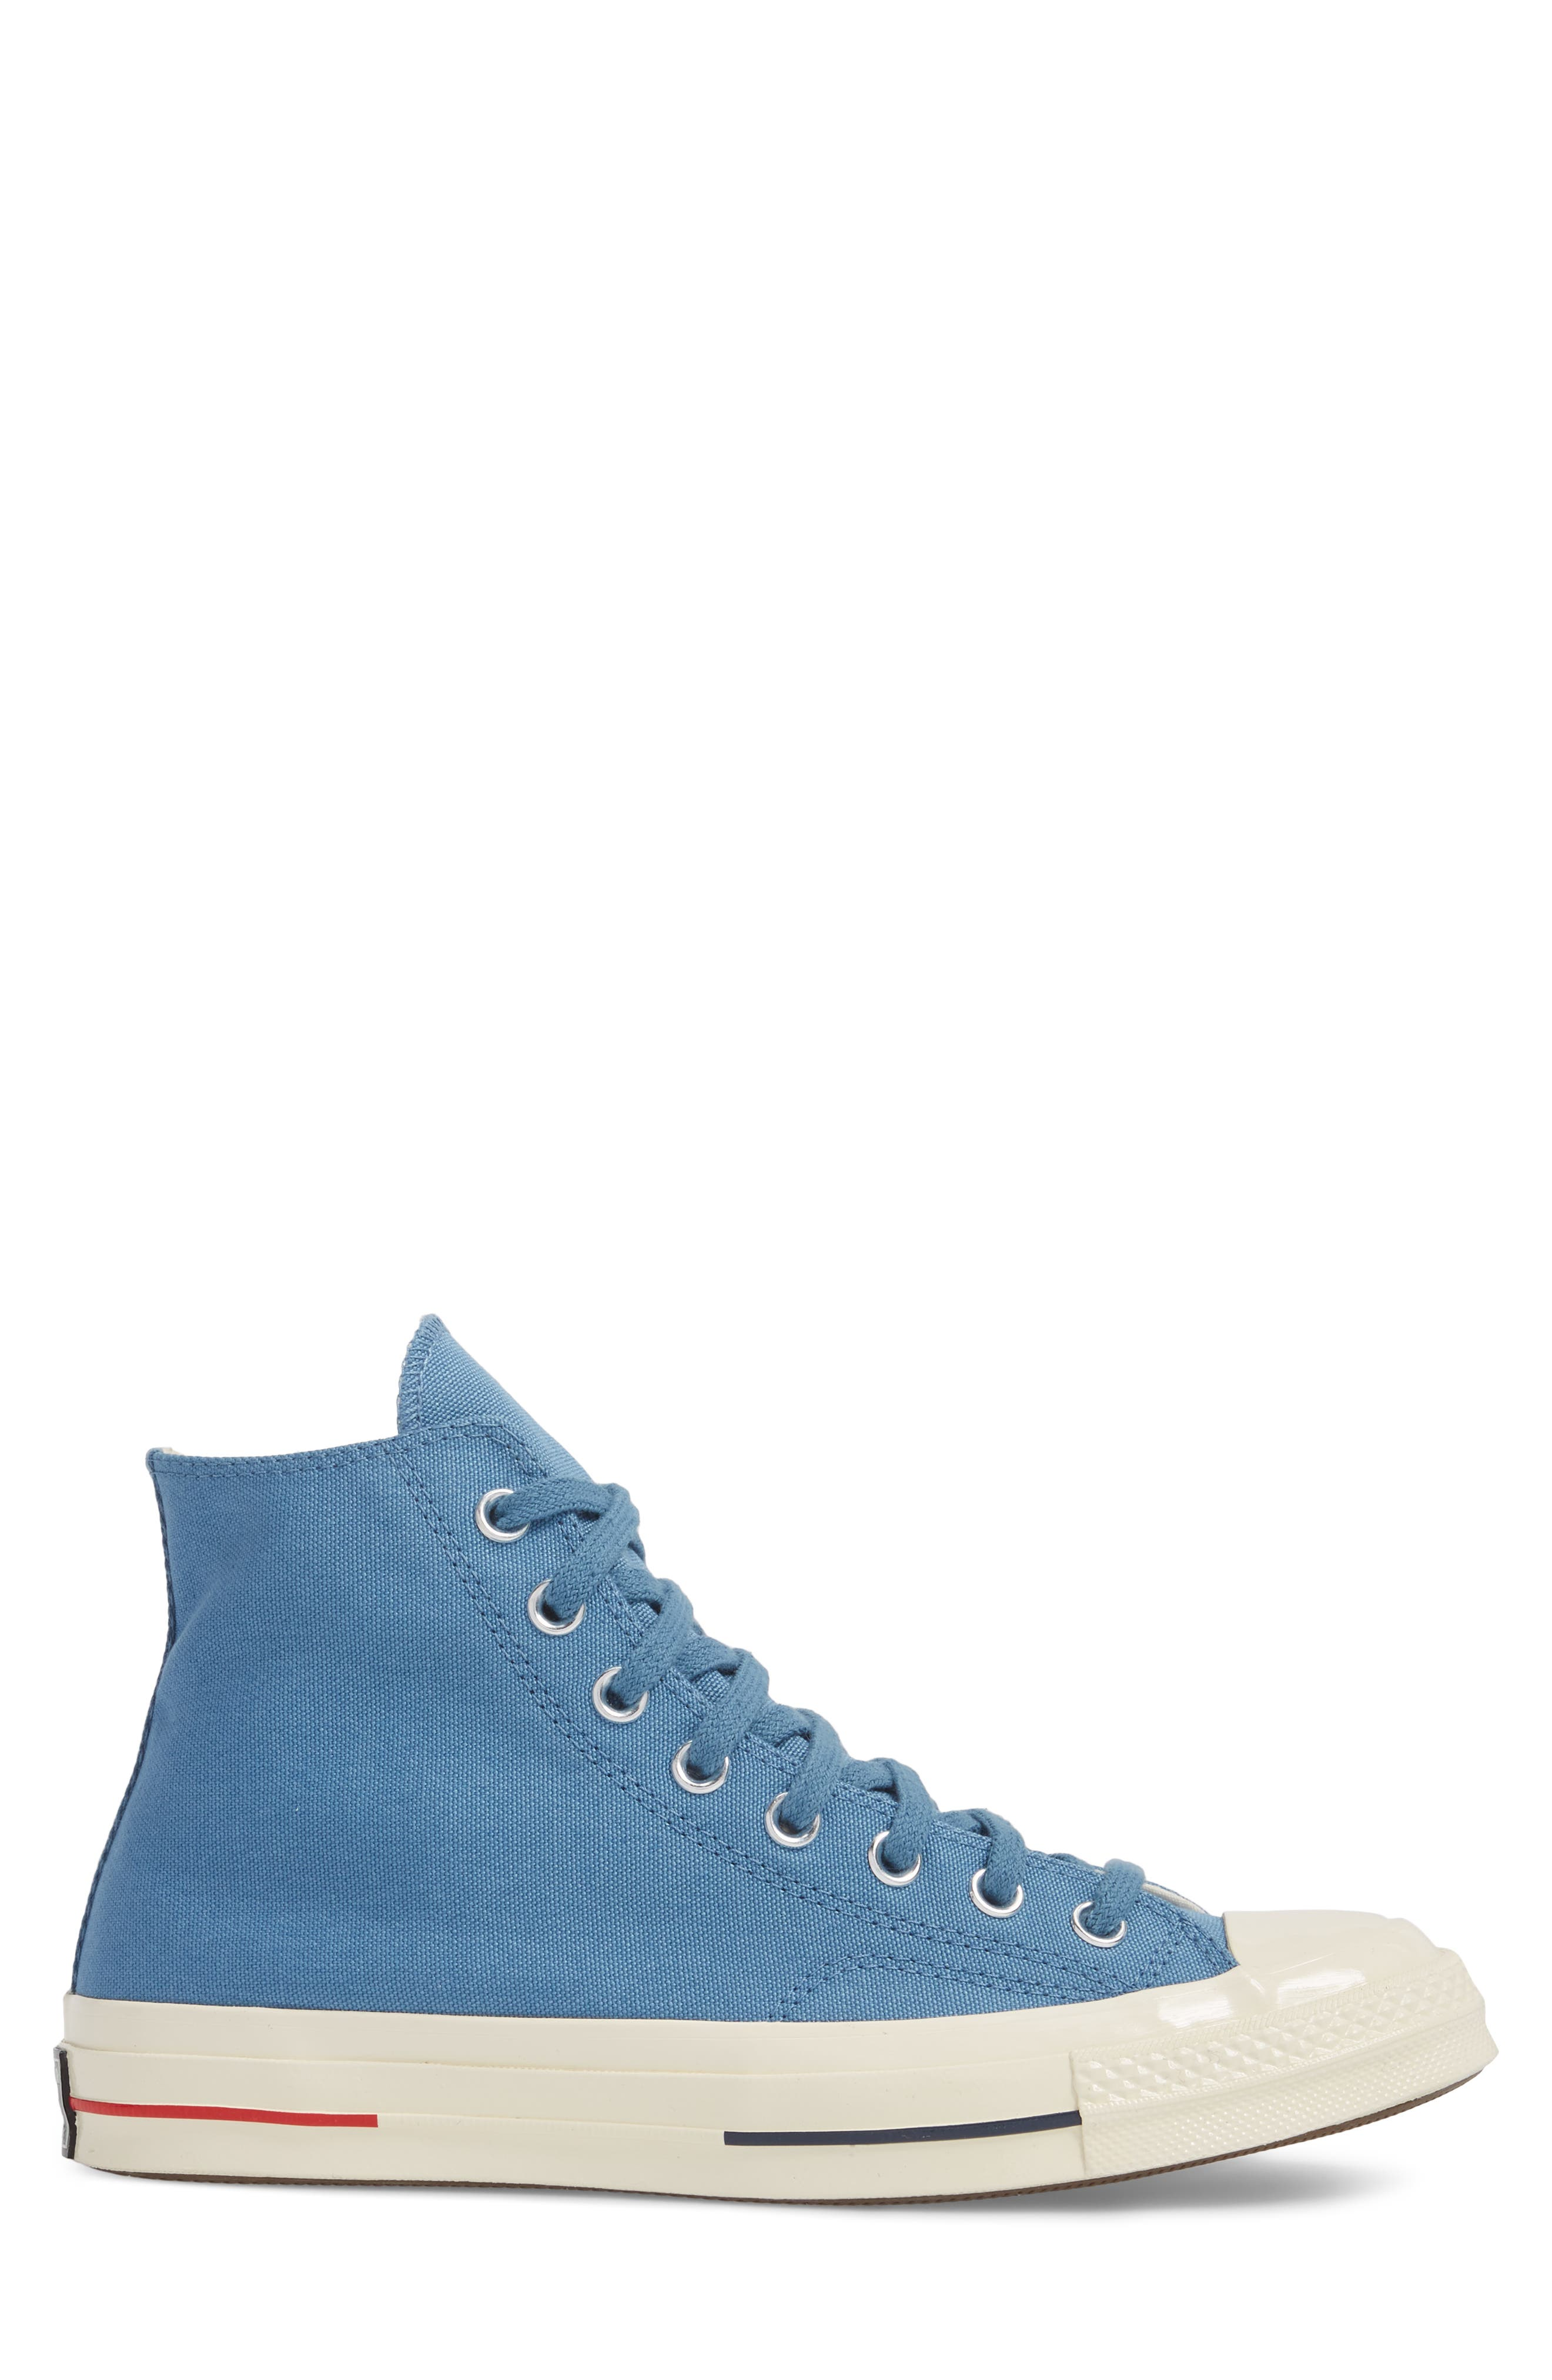 Chuck Taylor<sup>®</sup> All Star<sup>®</sup> '70s Heritage High Top Sneaker,                             Alternate thumbnail 3, color,                             400